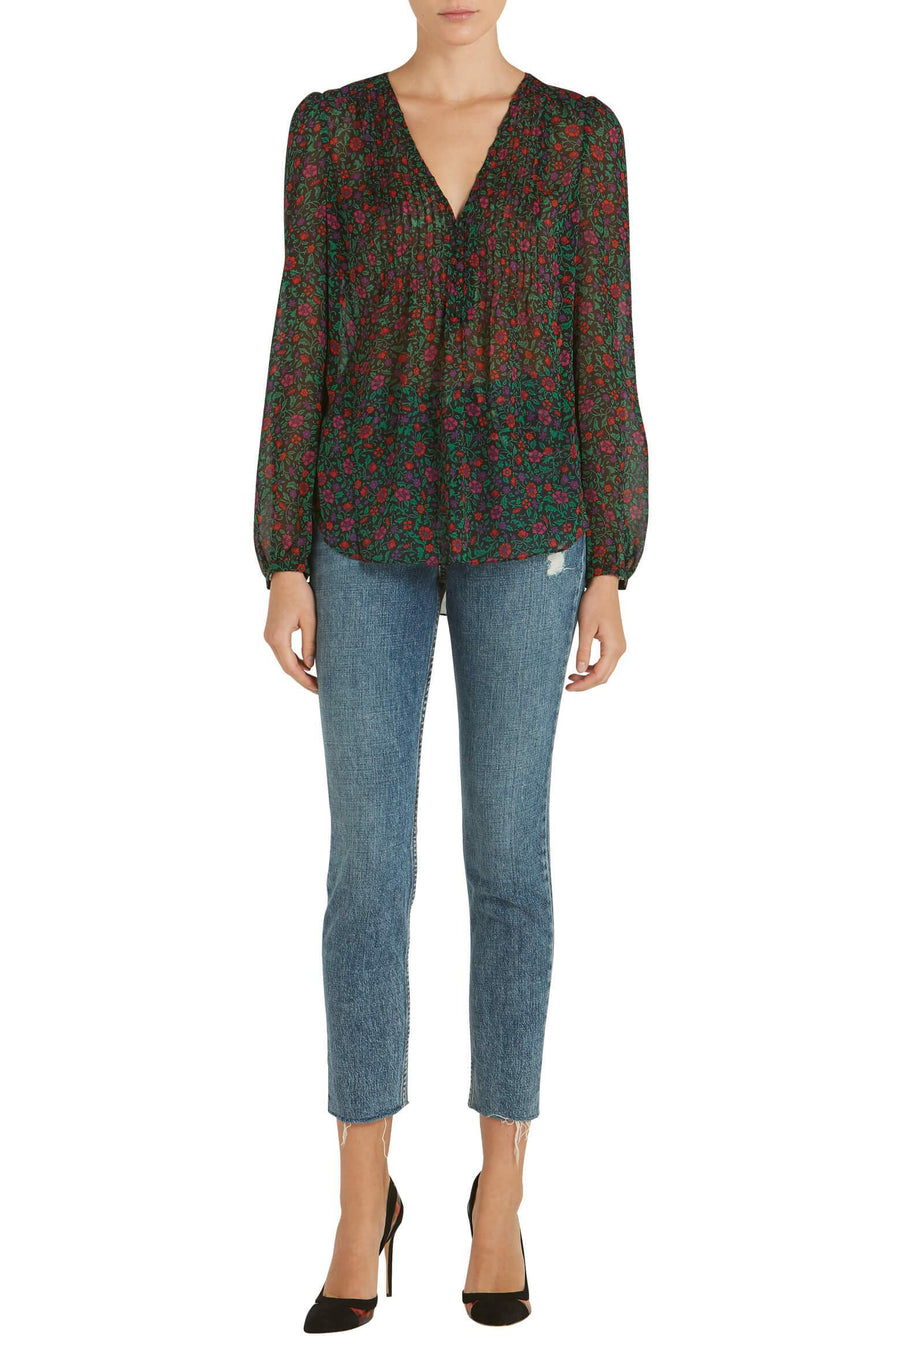 Veronica Beard Lowell Silk Blouse from The New Trend